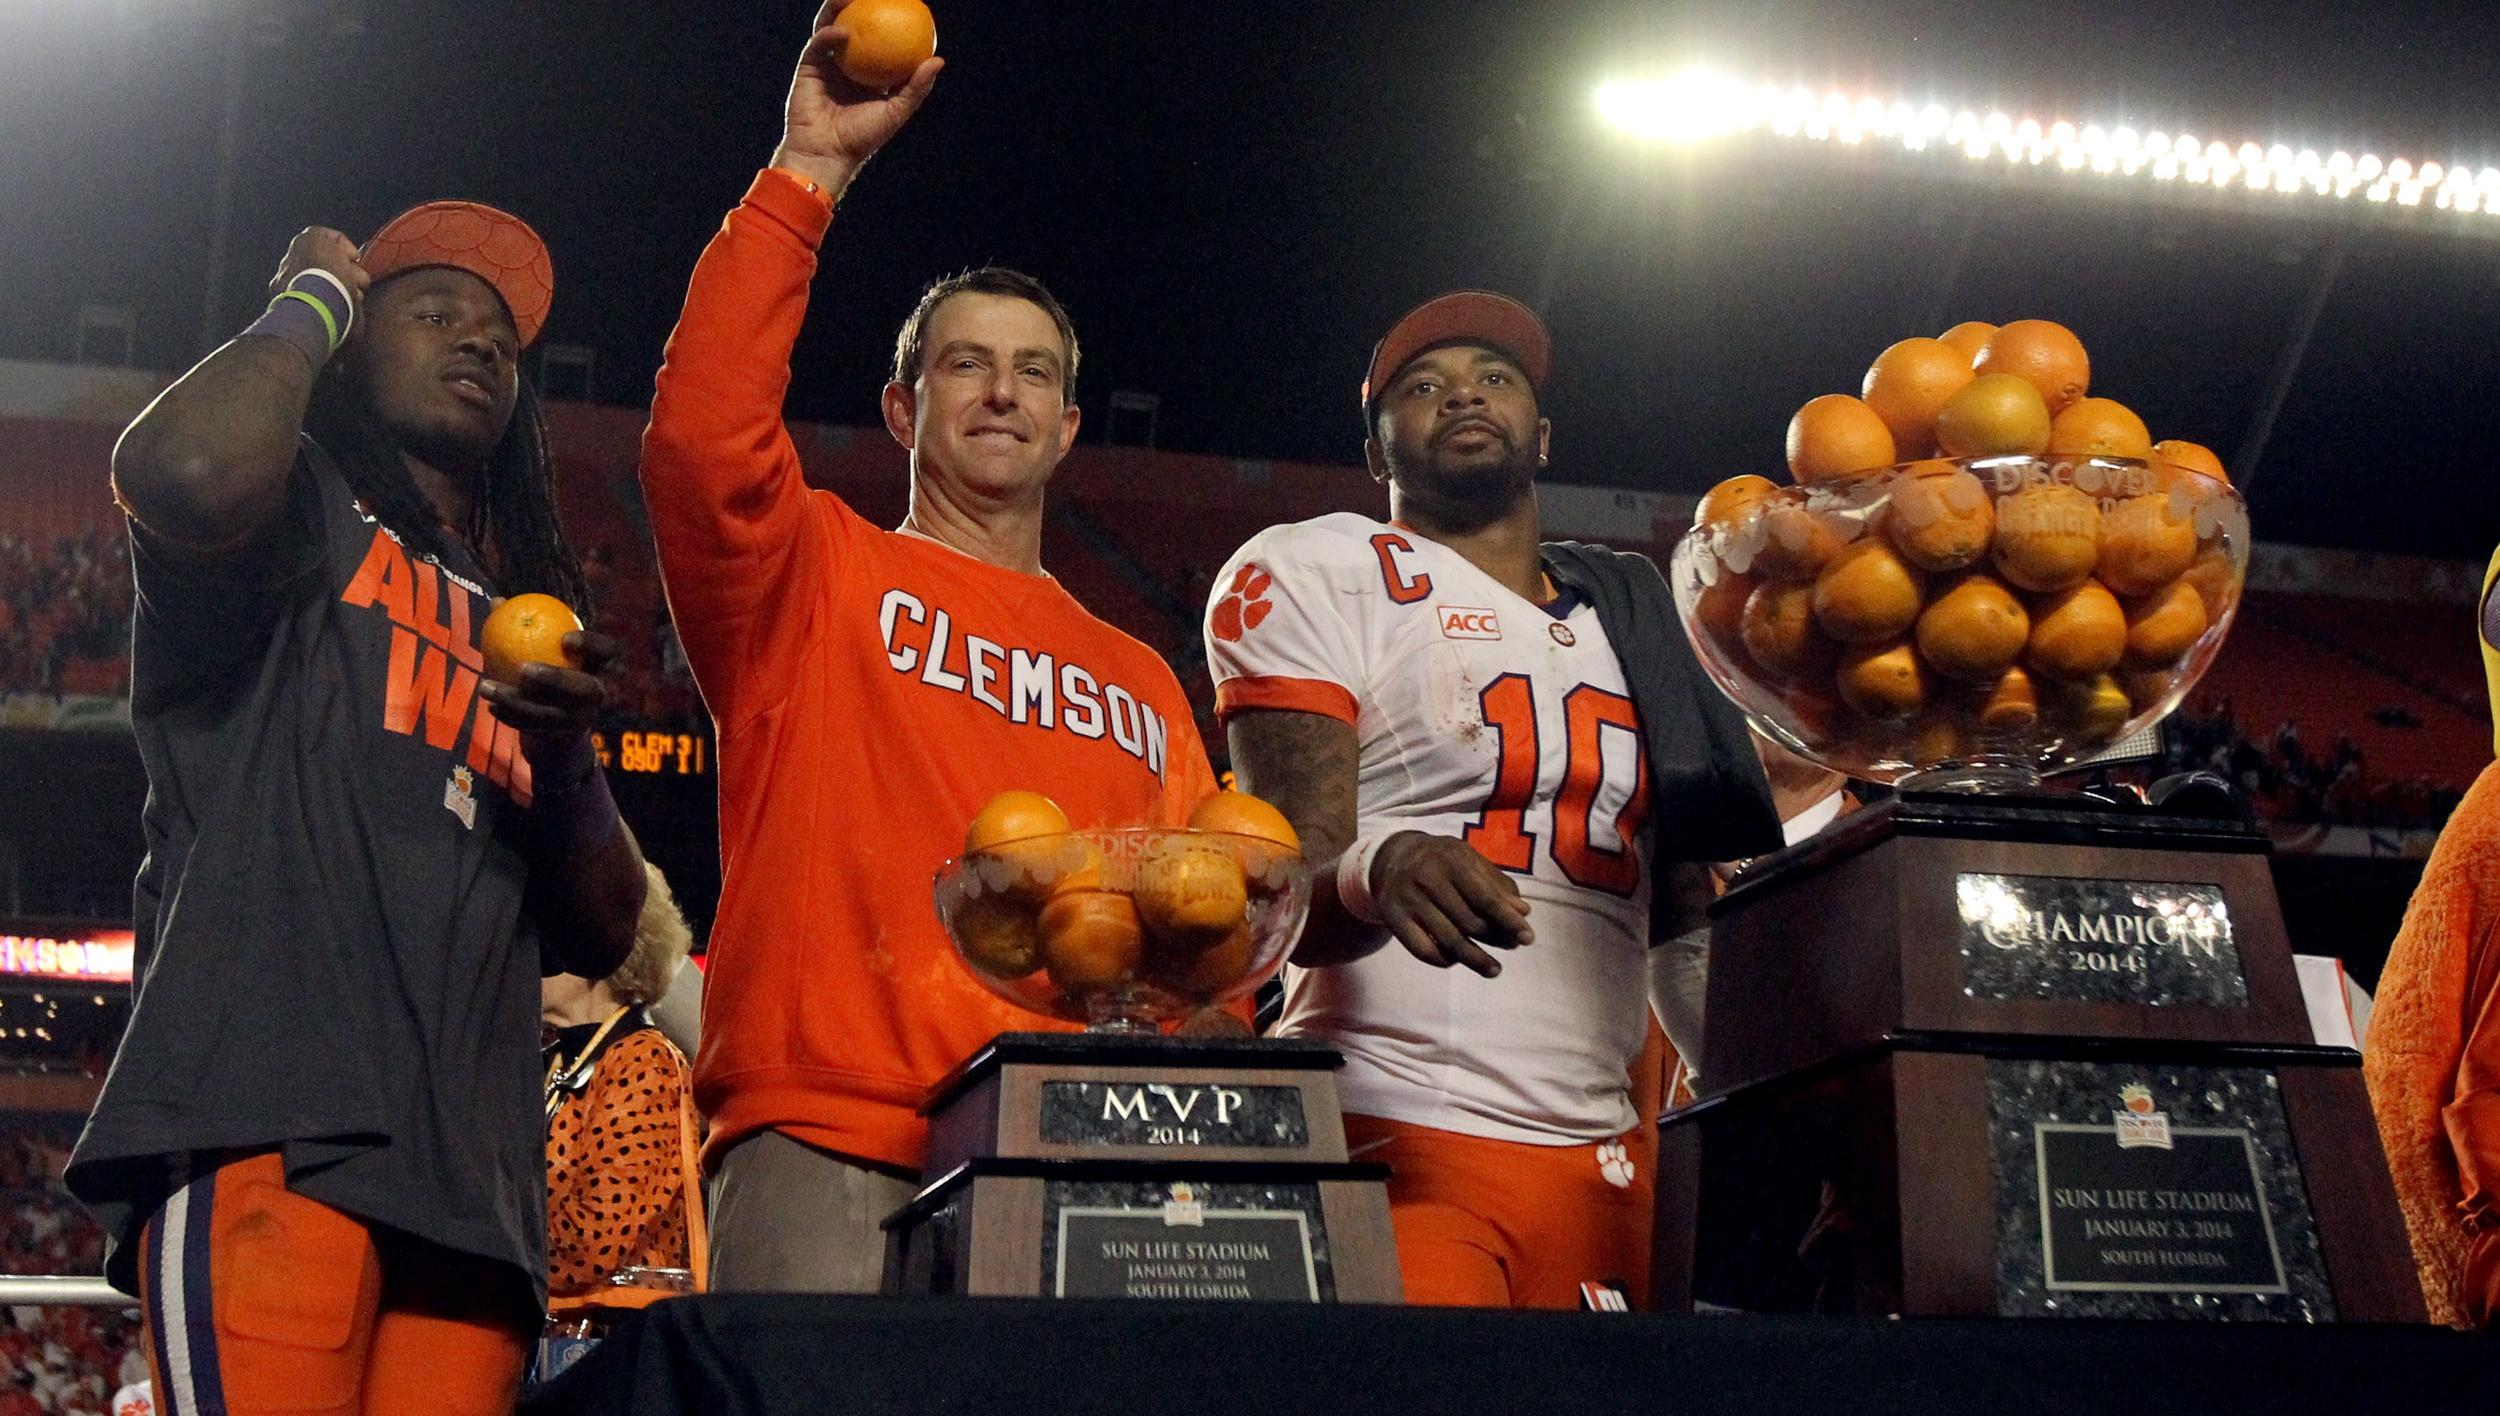 Clemson Seventh in USA Today, Eighth in AP Final Poll